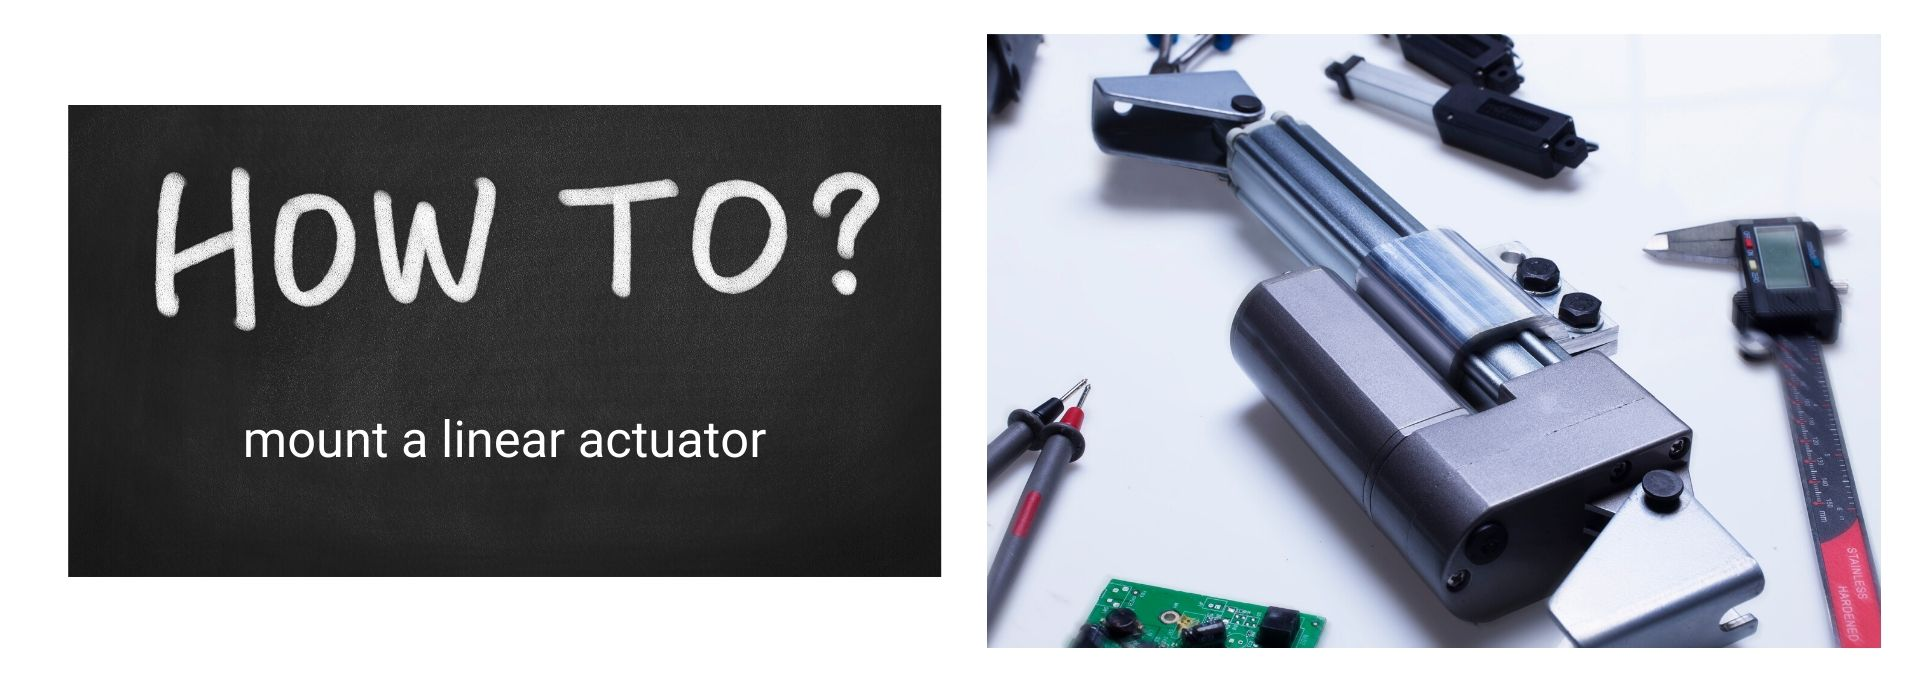 how to mount linear actuator